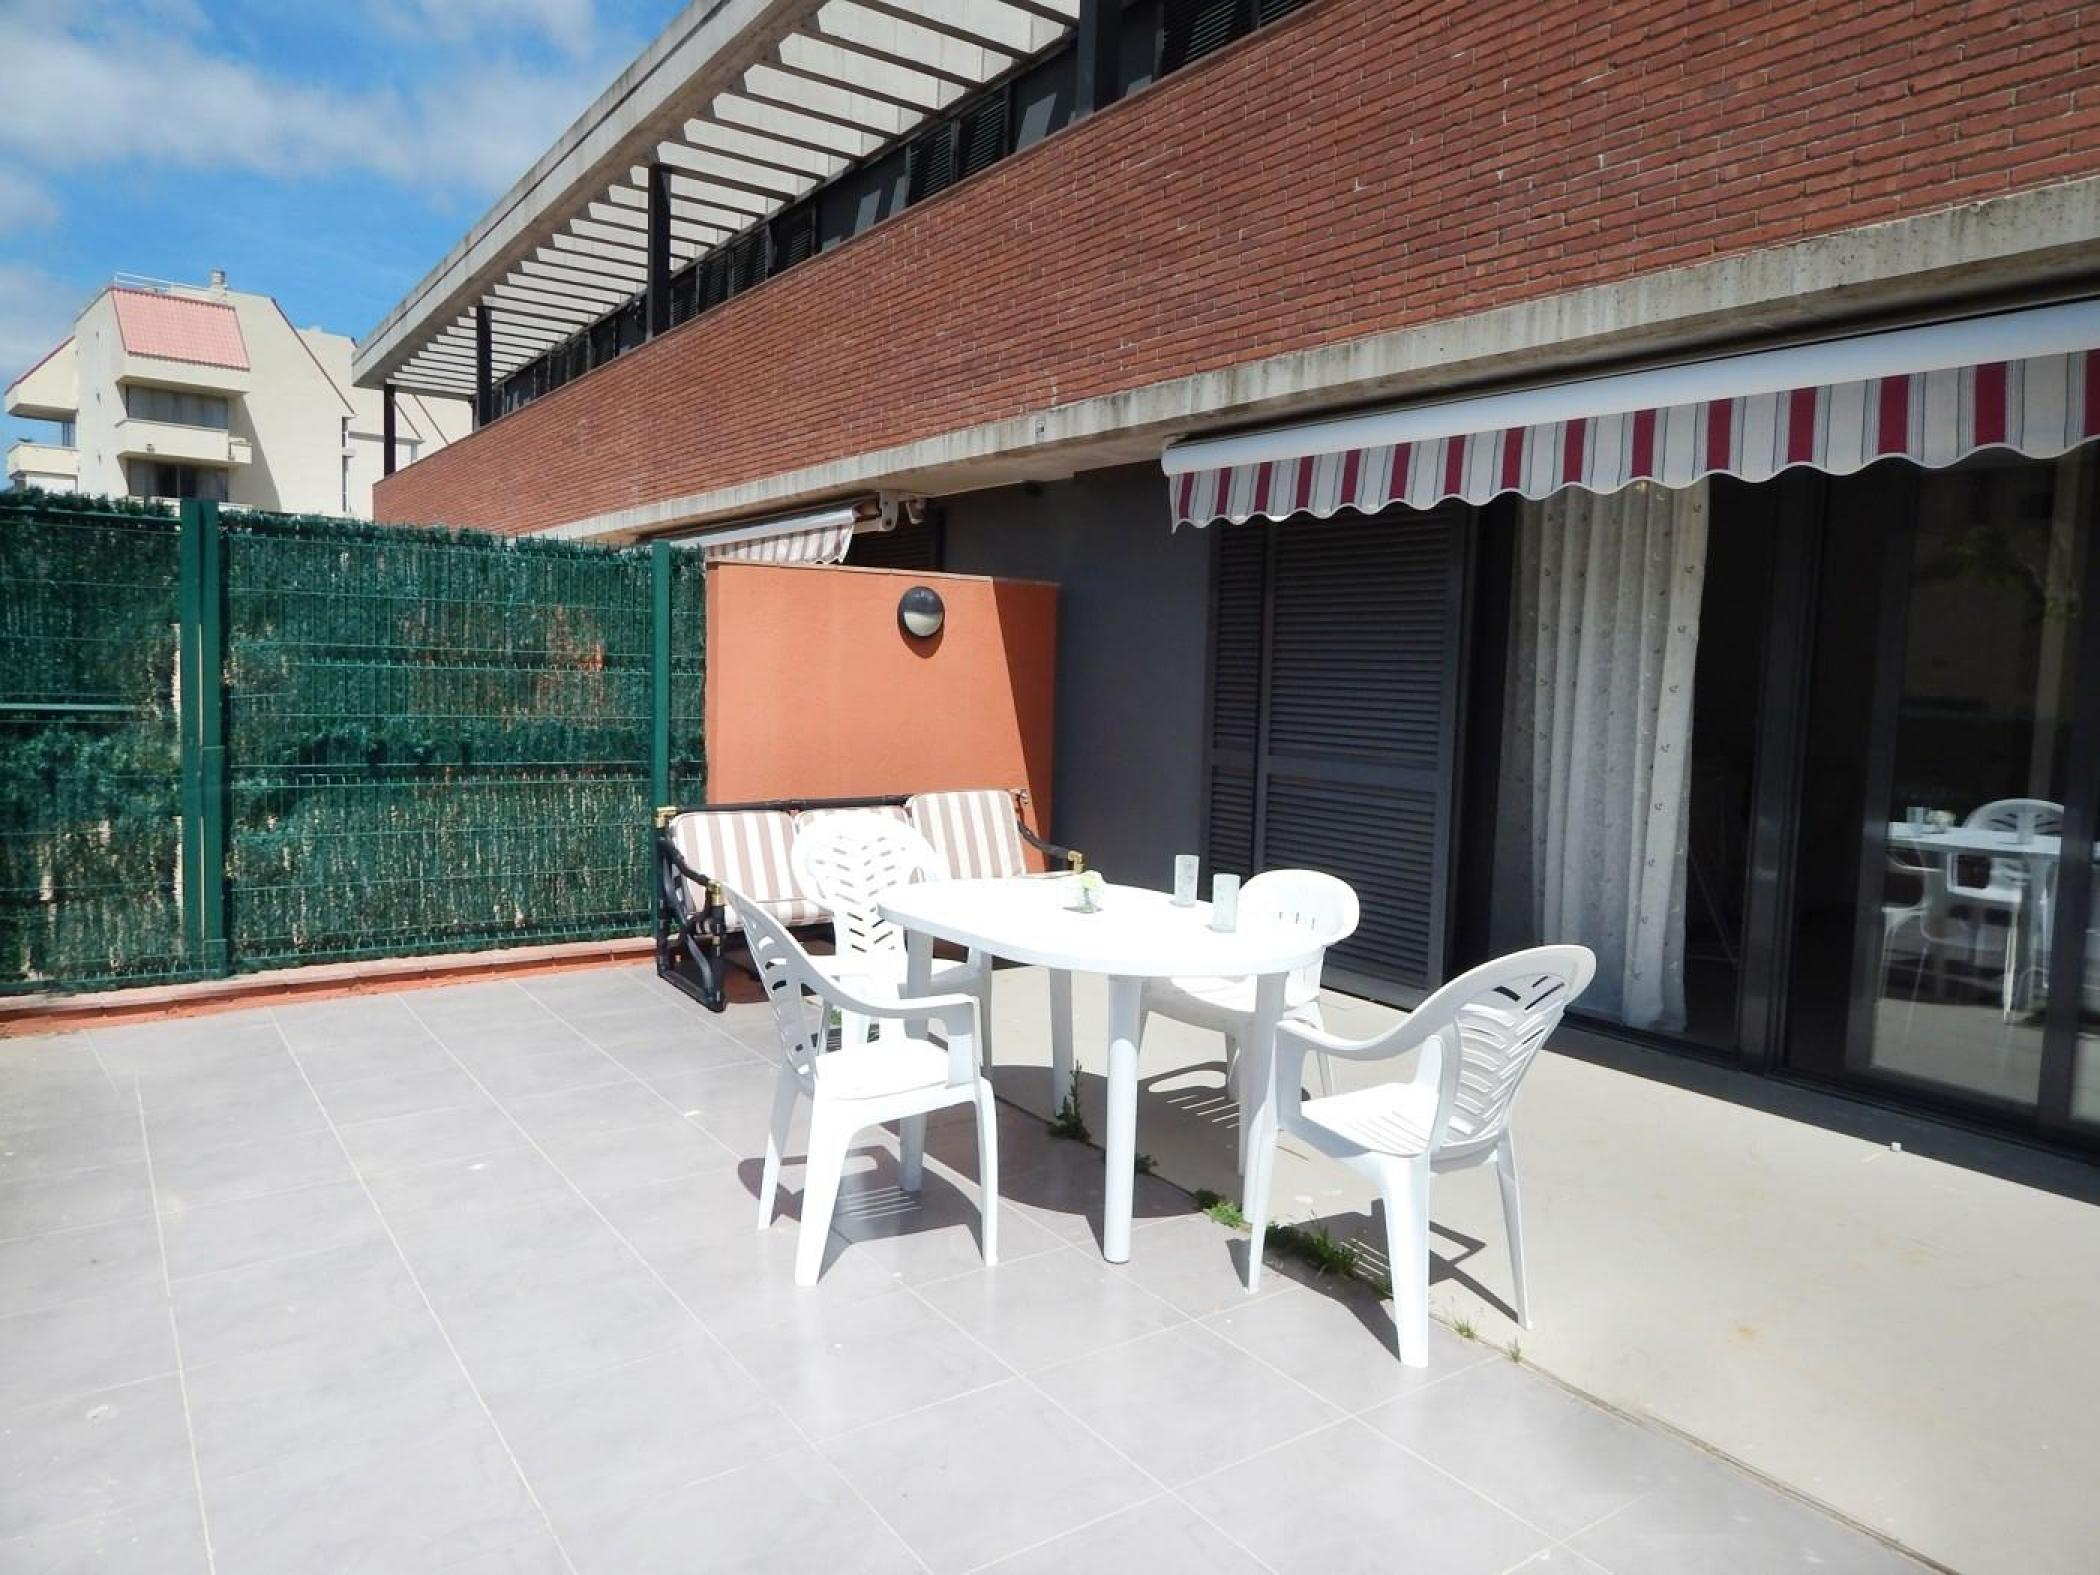 аренда квартира с басcейн для Platja d'Aro - Ground floor in front of the sea Ridaura BX4 - 15